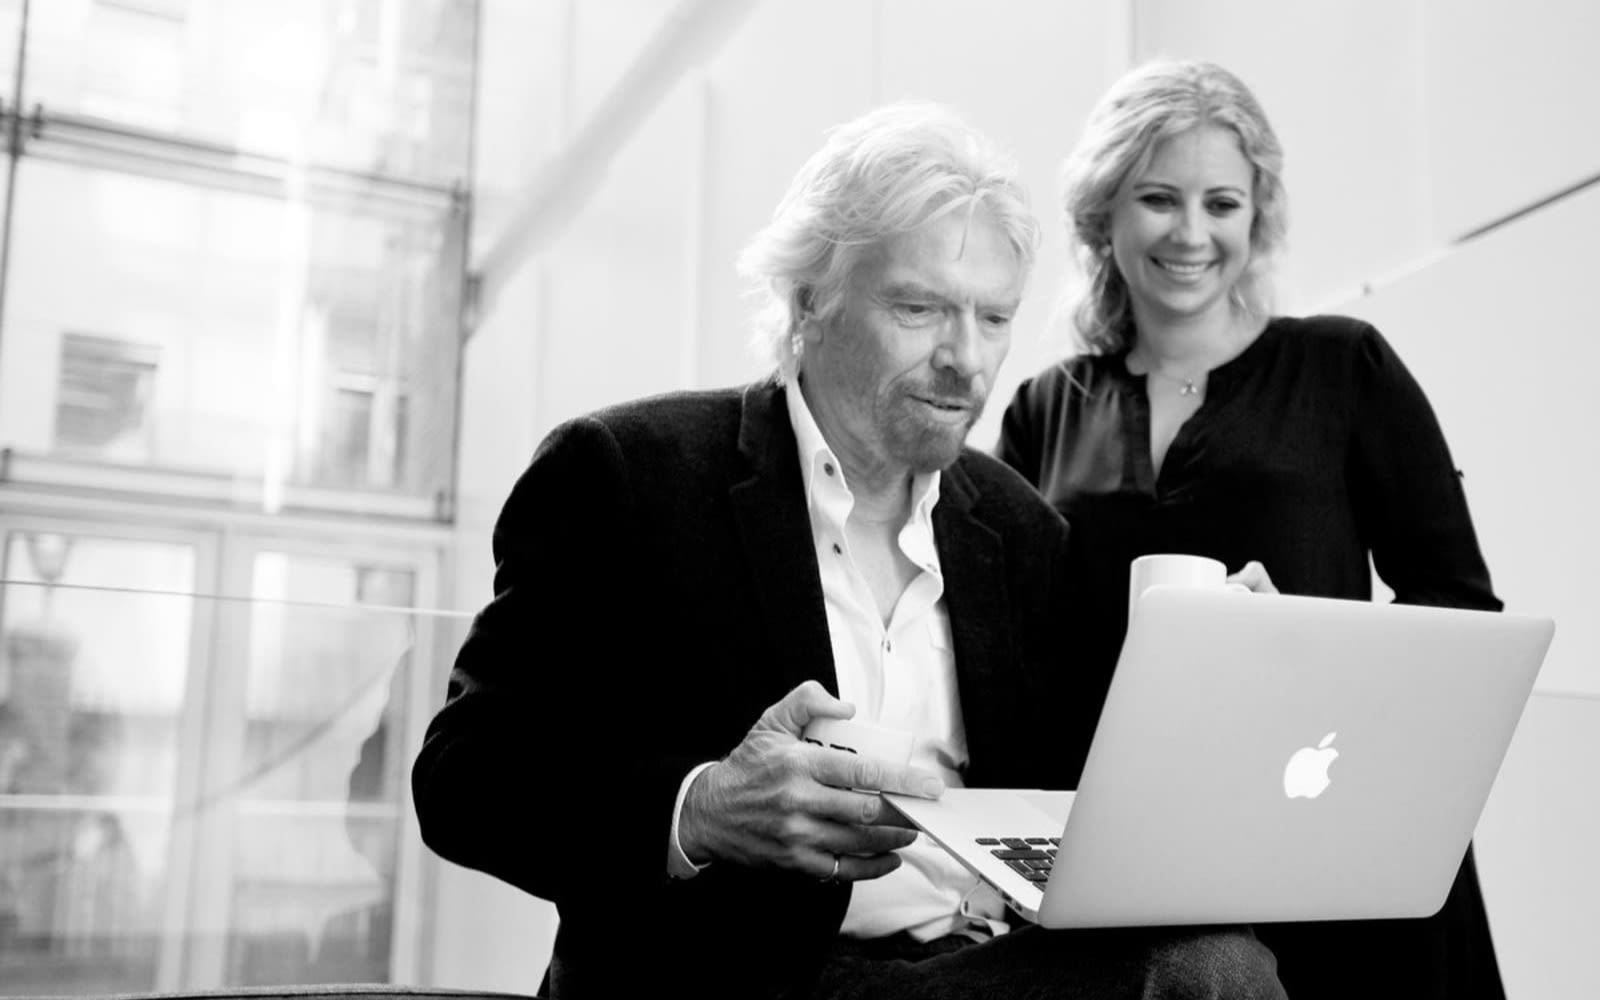 Black and white image of Richard using a laptop and Holly Branson standing next to him looking over his shoulder at the screen